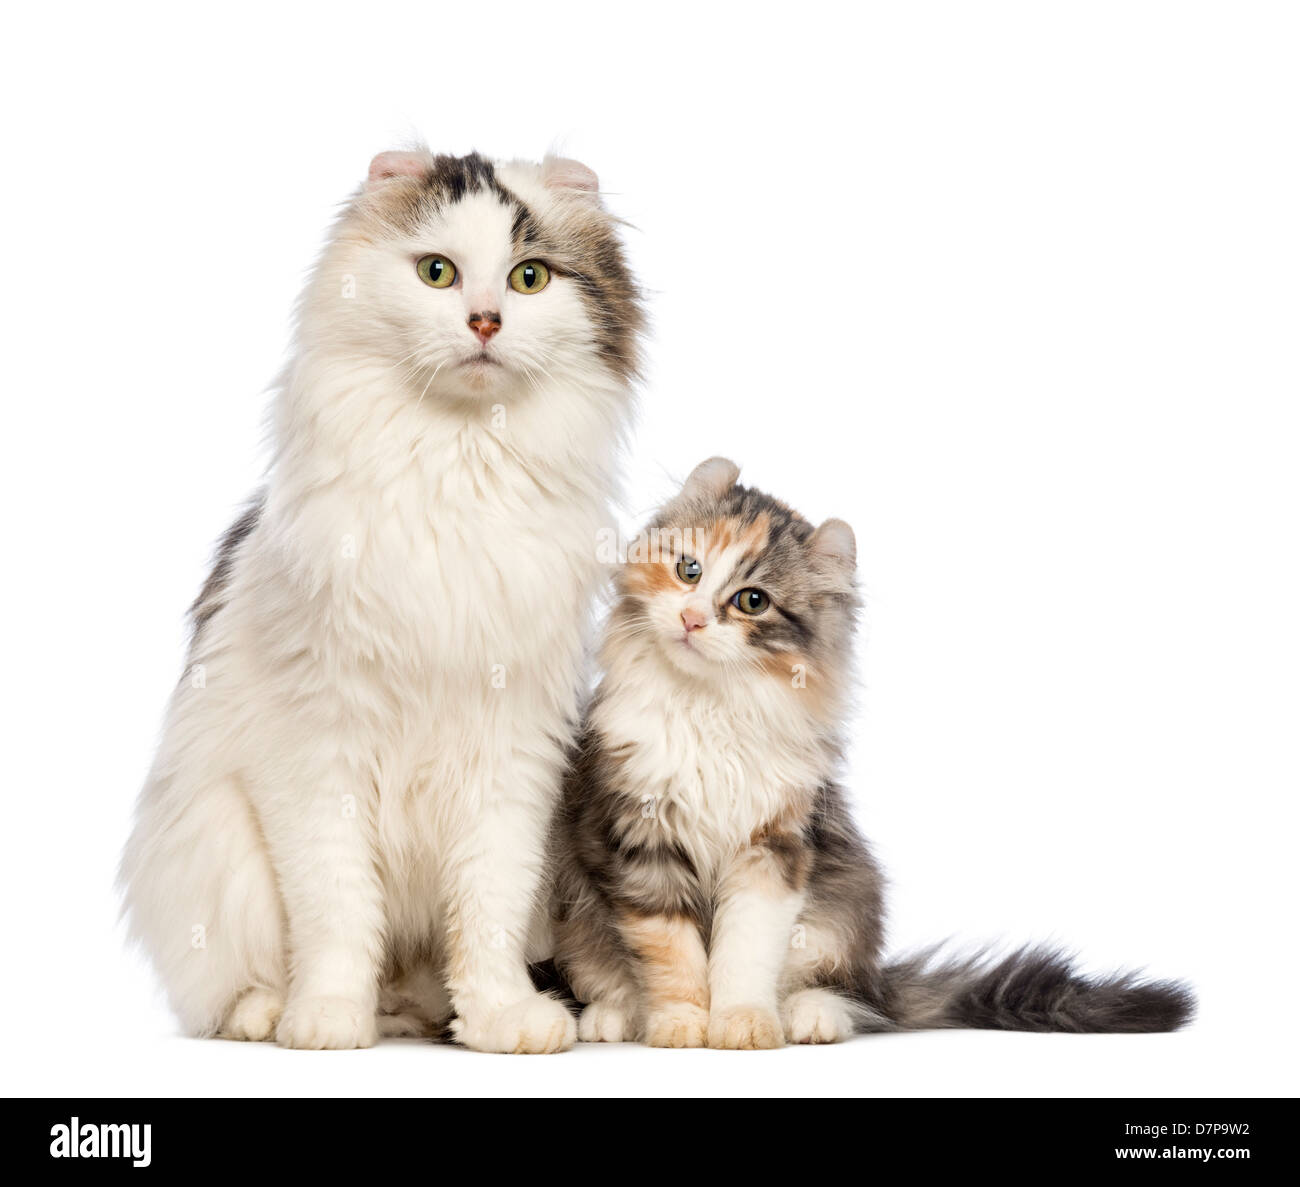 American Curl kitten, 3 months old, sitting and looking at camera with it's mother against white background - Stock Image